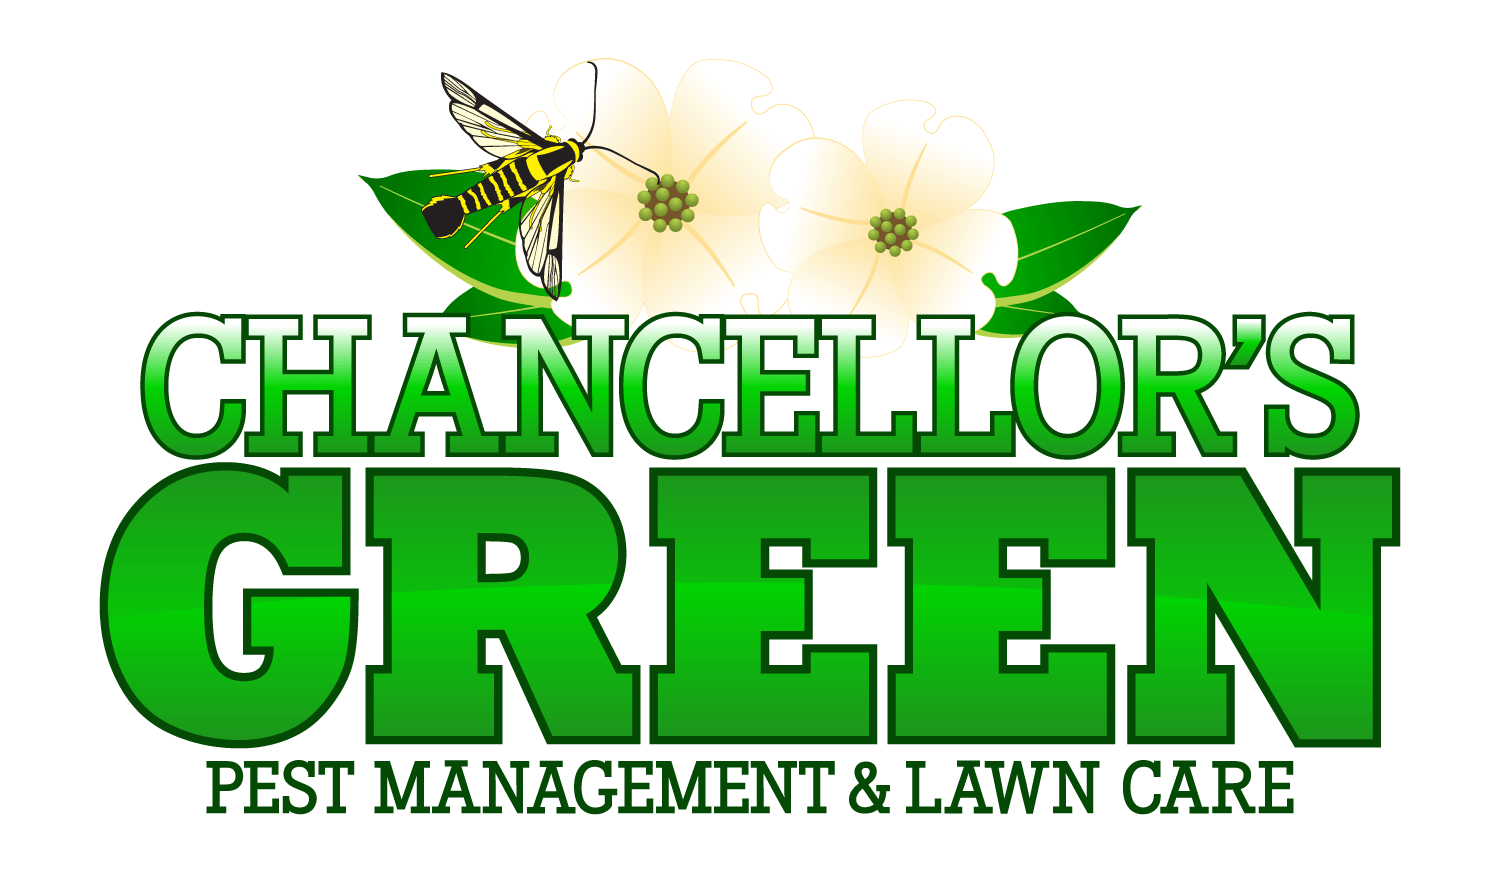 ChancellorsGreenLawnCareLOGO